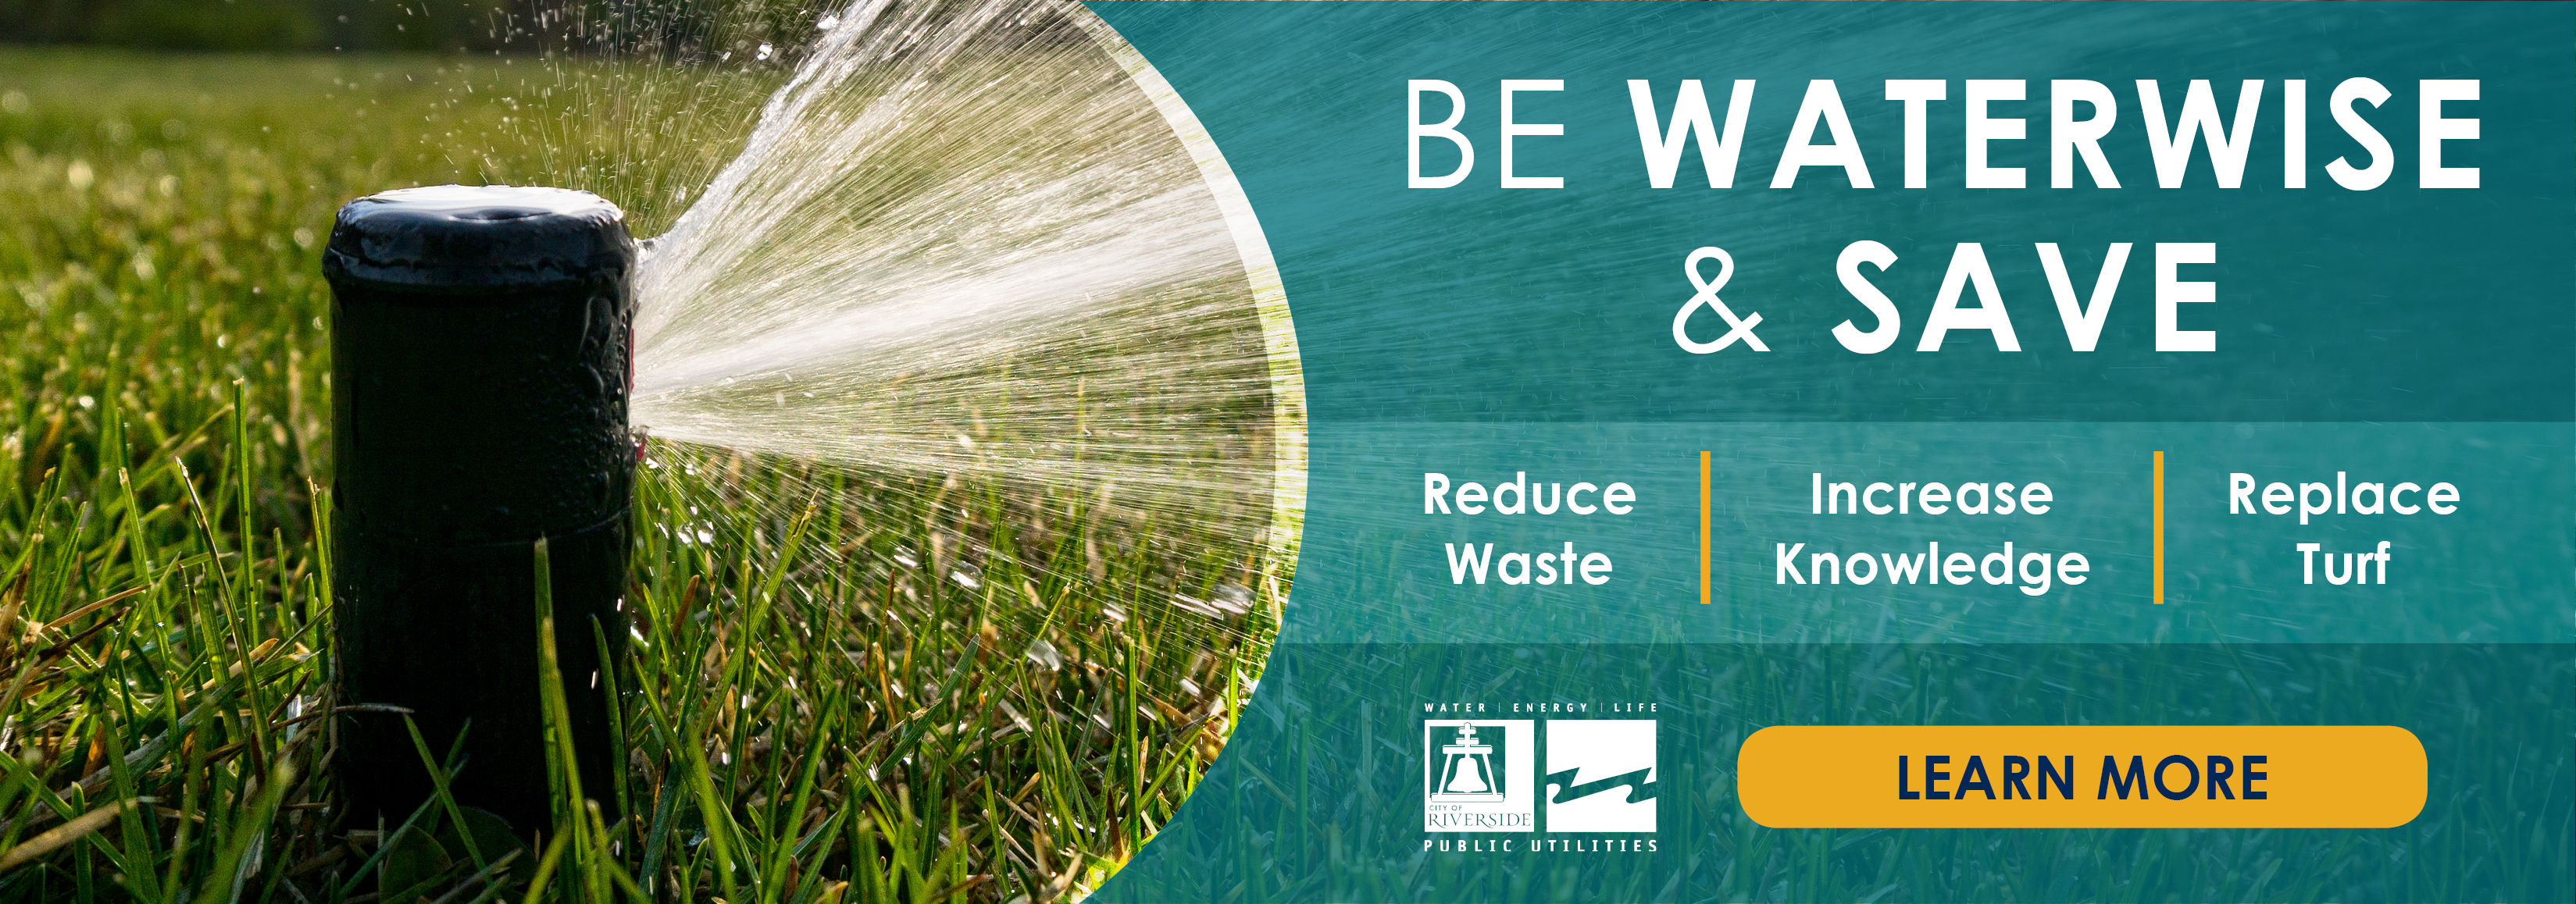 Be Waterwise